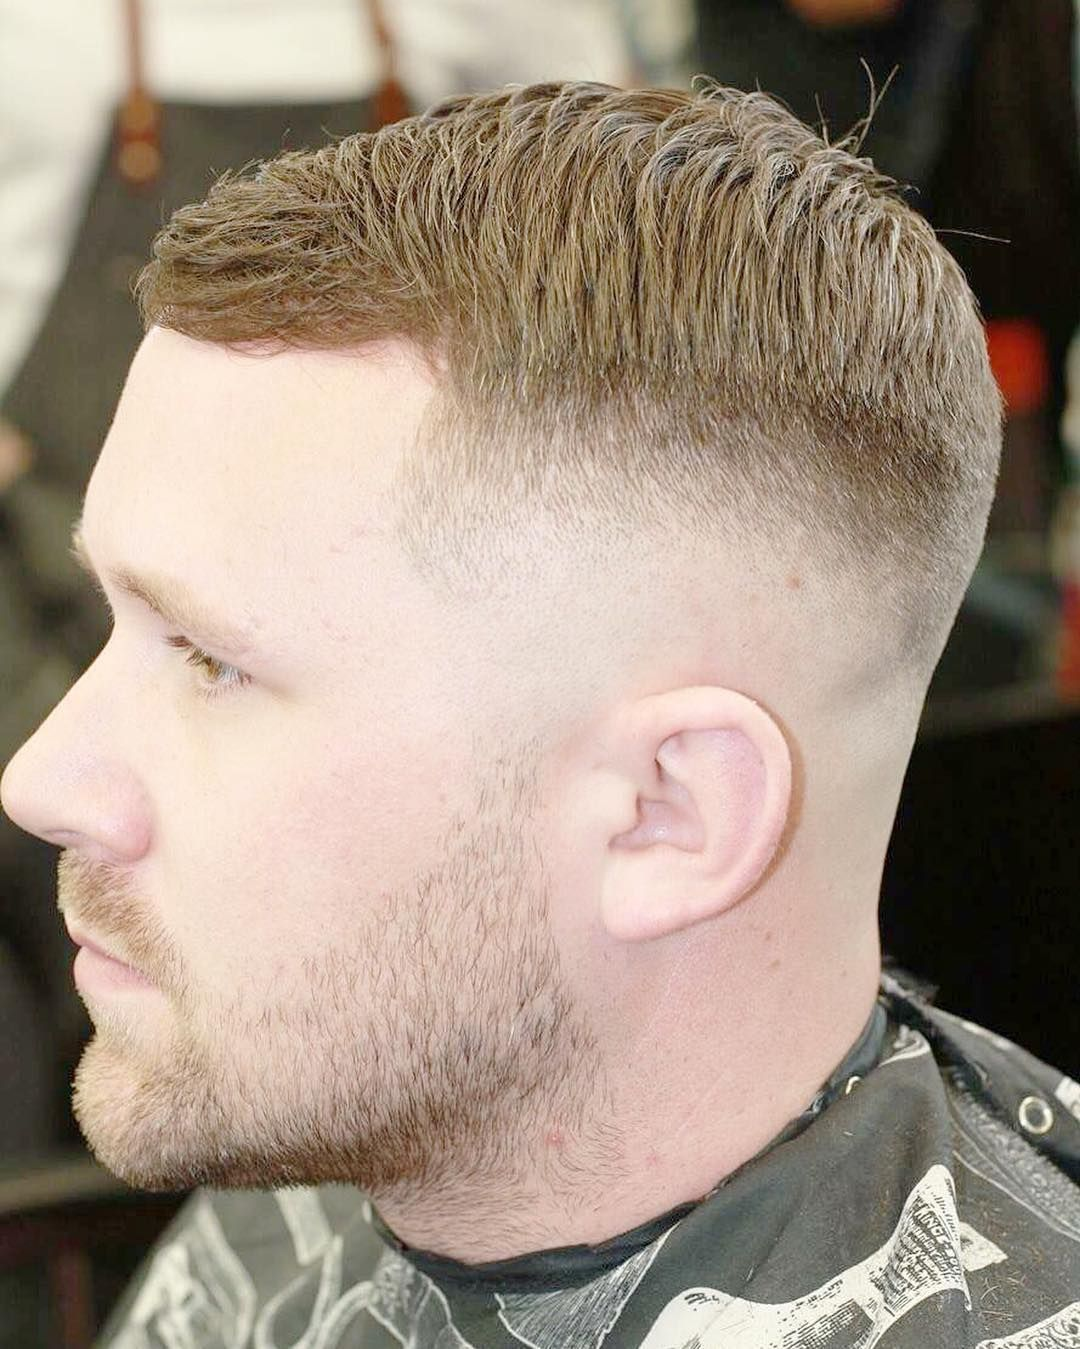 Haircut by barberstacie http://ift.tt/1Q1MAd8 #menshair #menshairstyles #menshaircuts #hairstylesformen #coolhaircuts #coolhairstyles #haircuts #hairstyles #barbers